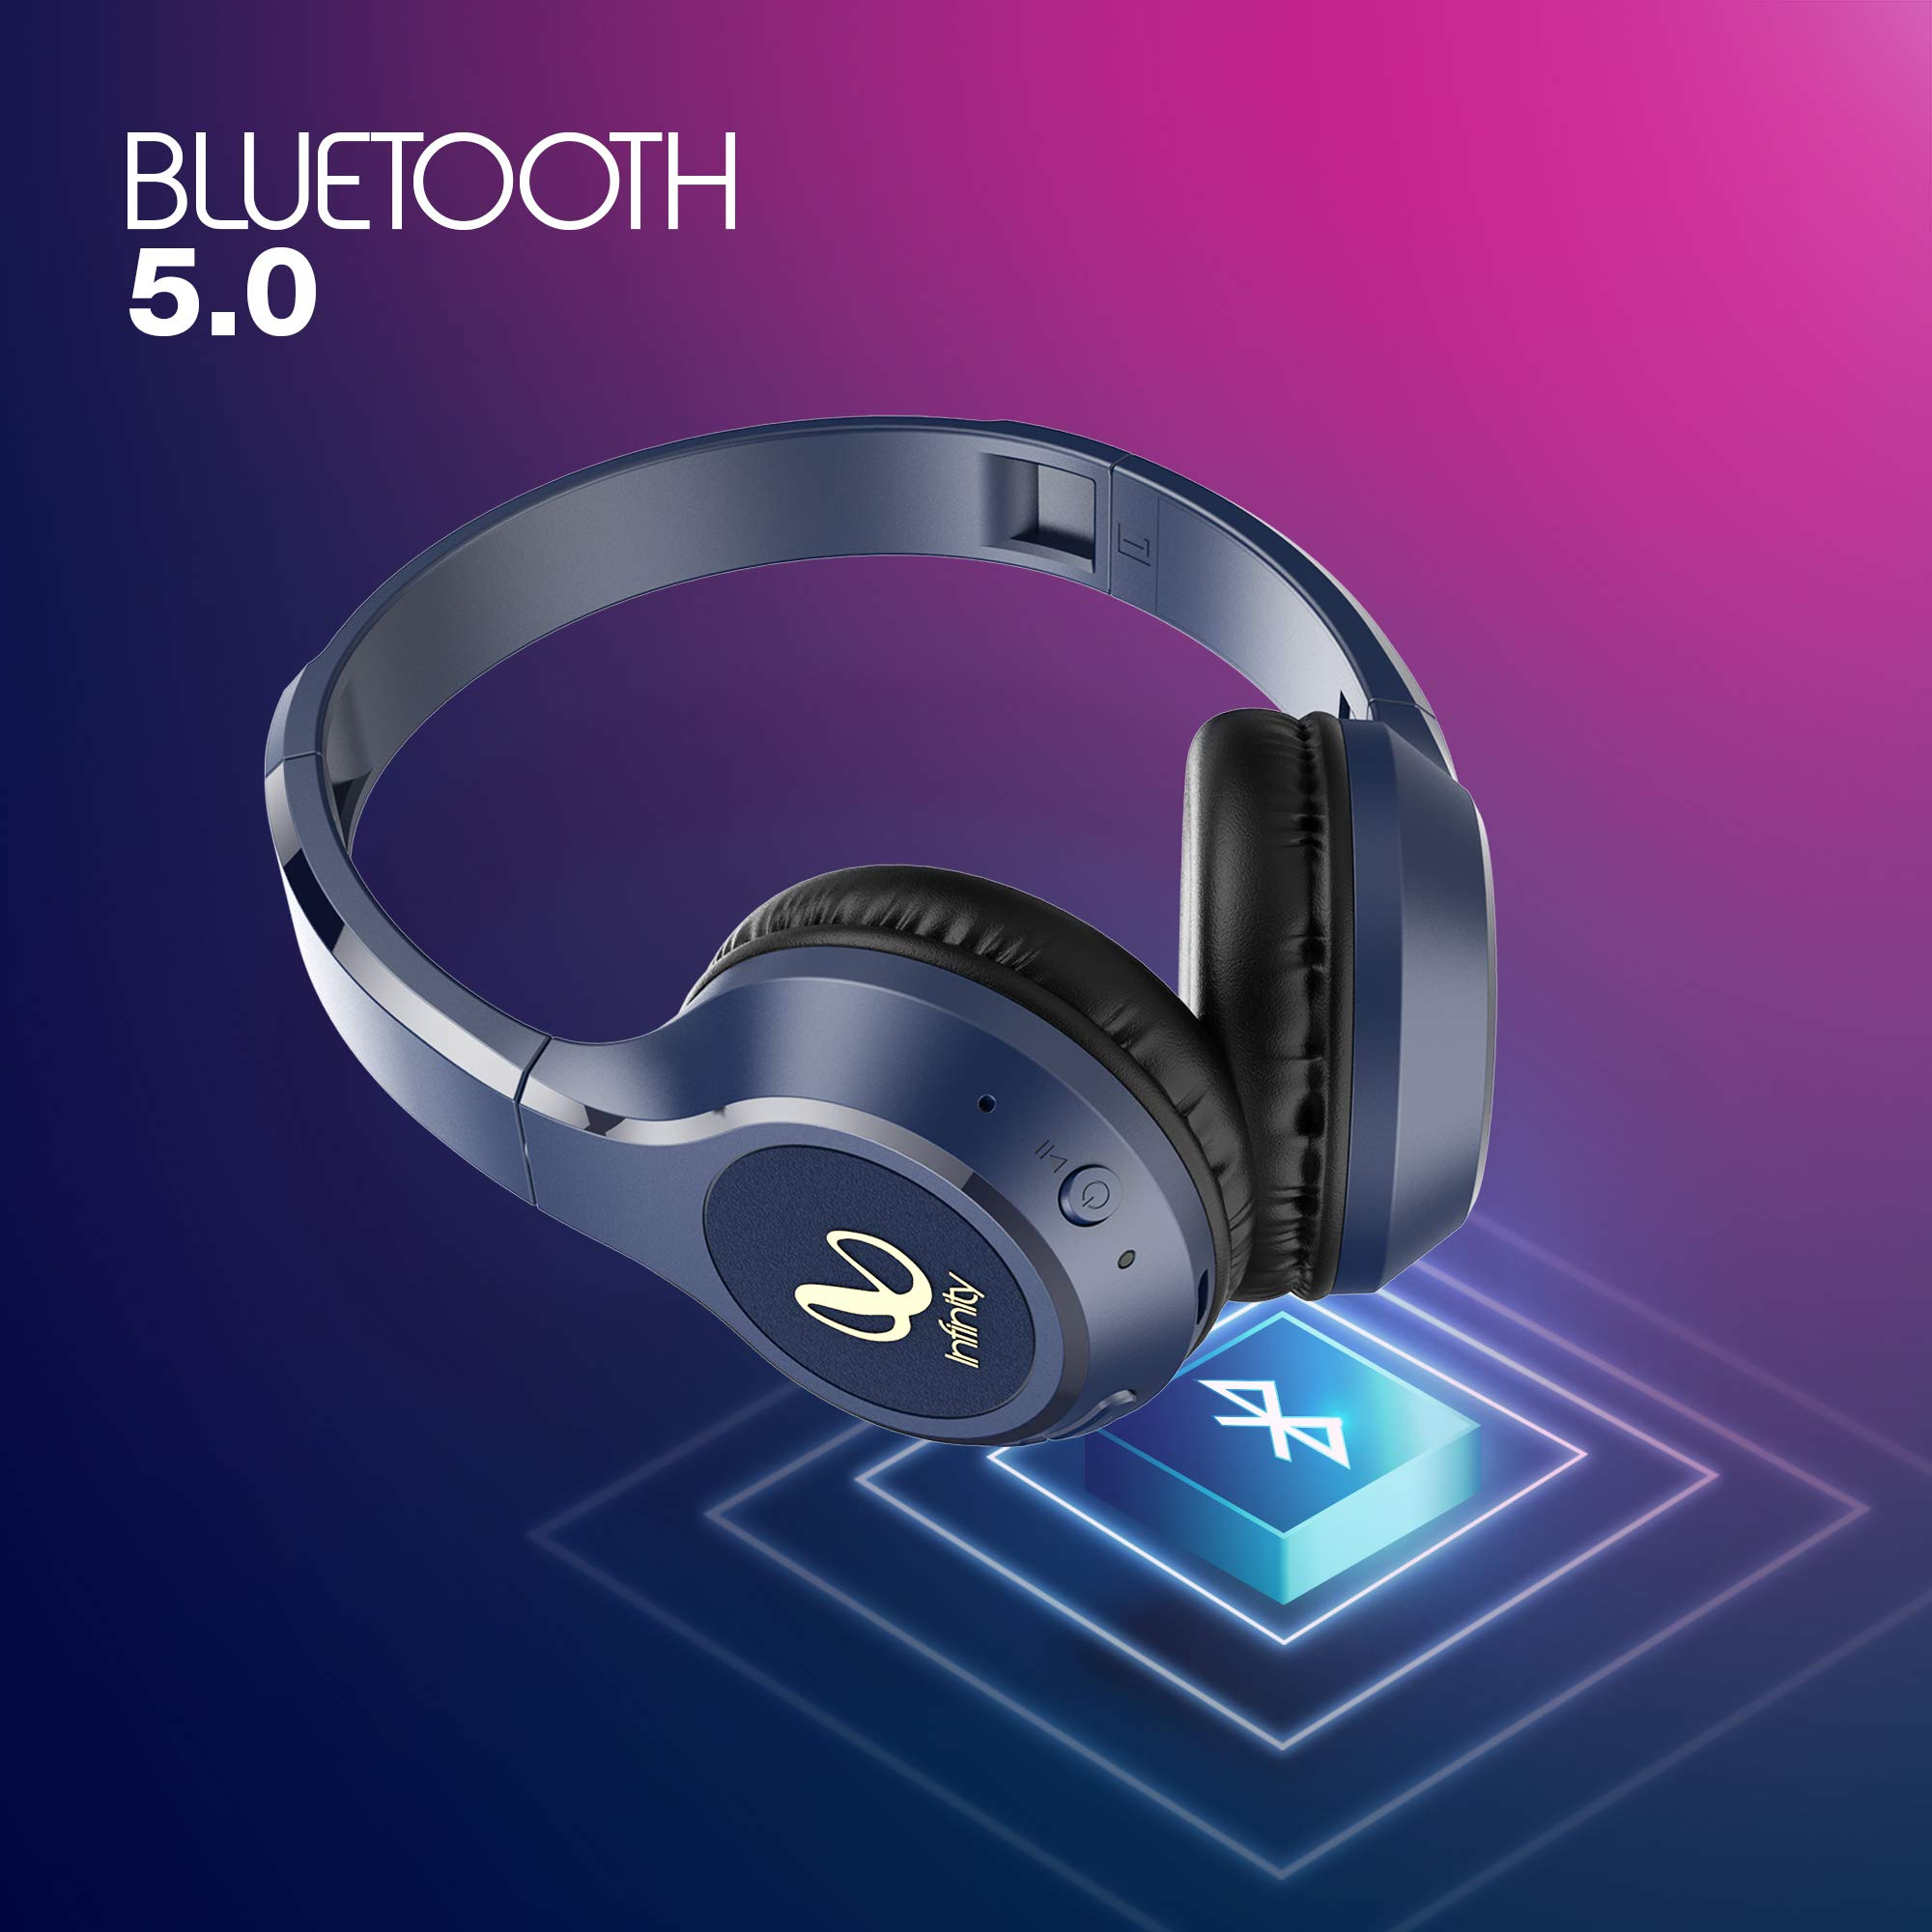 Motorola Escape 210 Over Ear Bluetooth Headphones With Alexa Black Buy Online In Brunei Motorola Products In Brunei See Prices Reviews And Free Delivery Over Bnd100 Desertcart